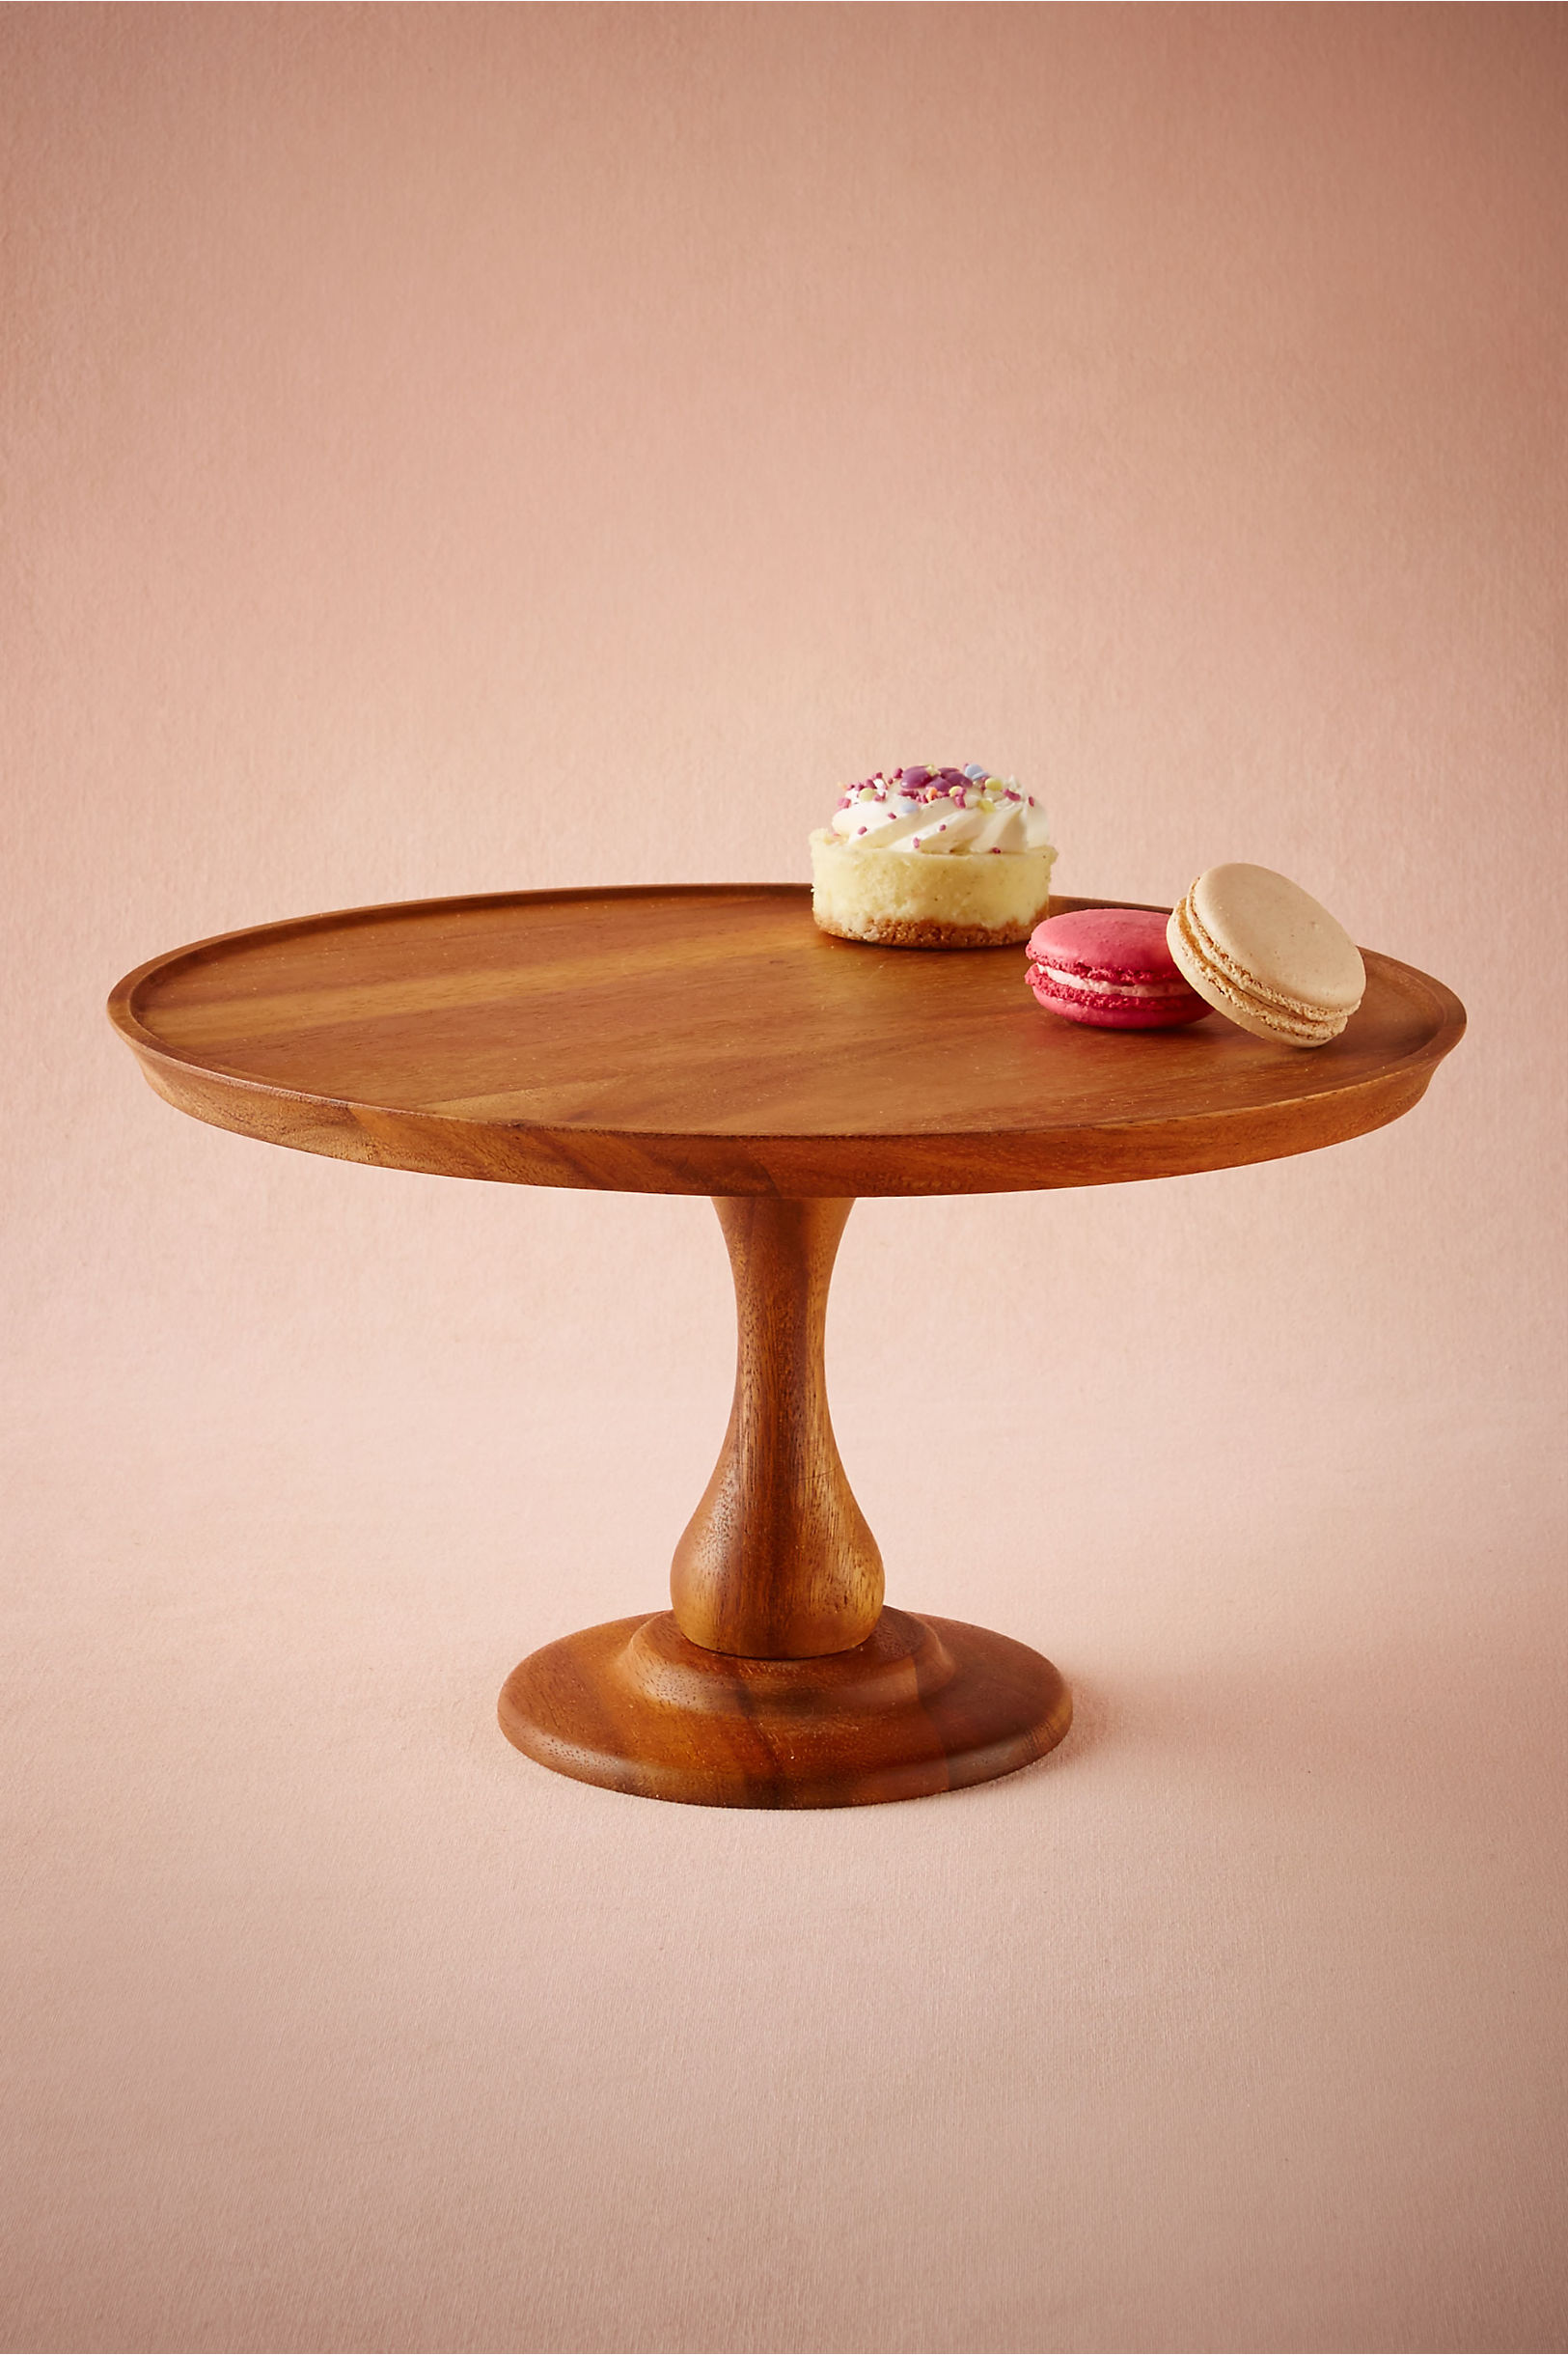 Decorative Cake Stands Walden Cake Stand In Sale Dccor Bhldn